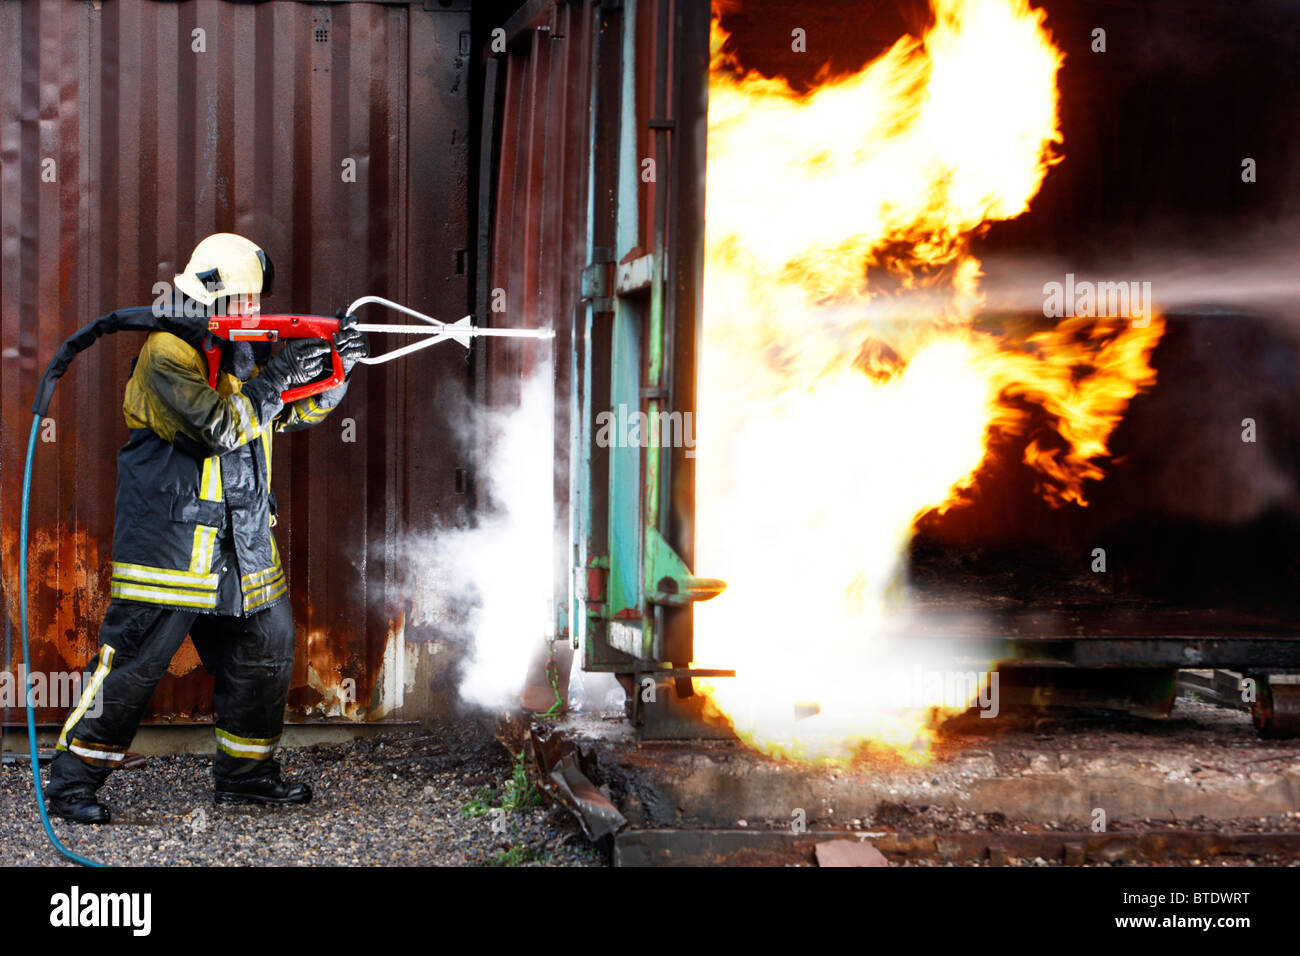 Fire fighting system Cobra. High pressure water jet extinguisher, cuts through metal an other materials to spray - Stock Image